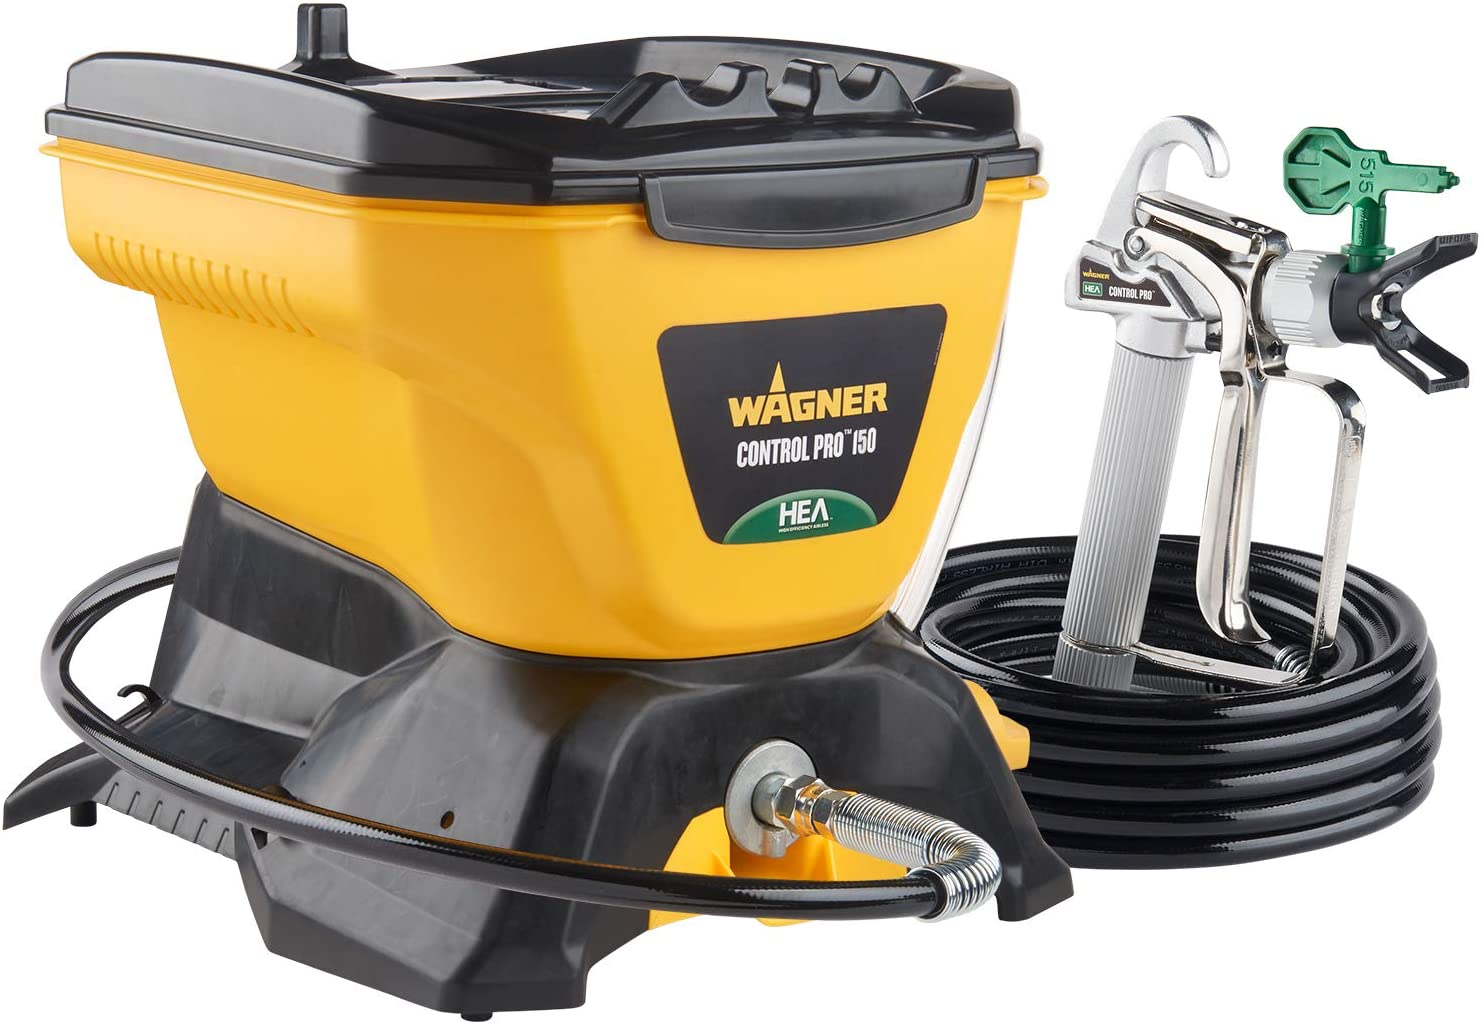 Wagner 2394312 Control Pro 150 AIRLESS, 300 W, 220 V, Amarillo